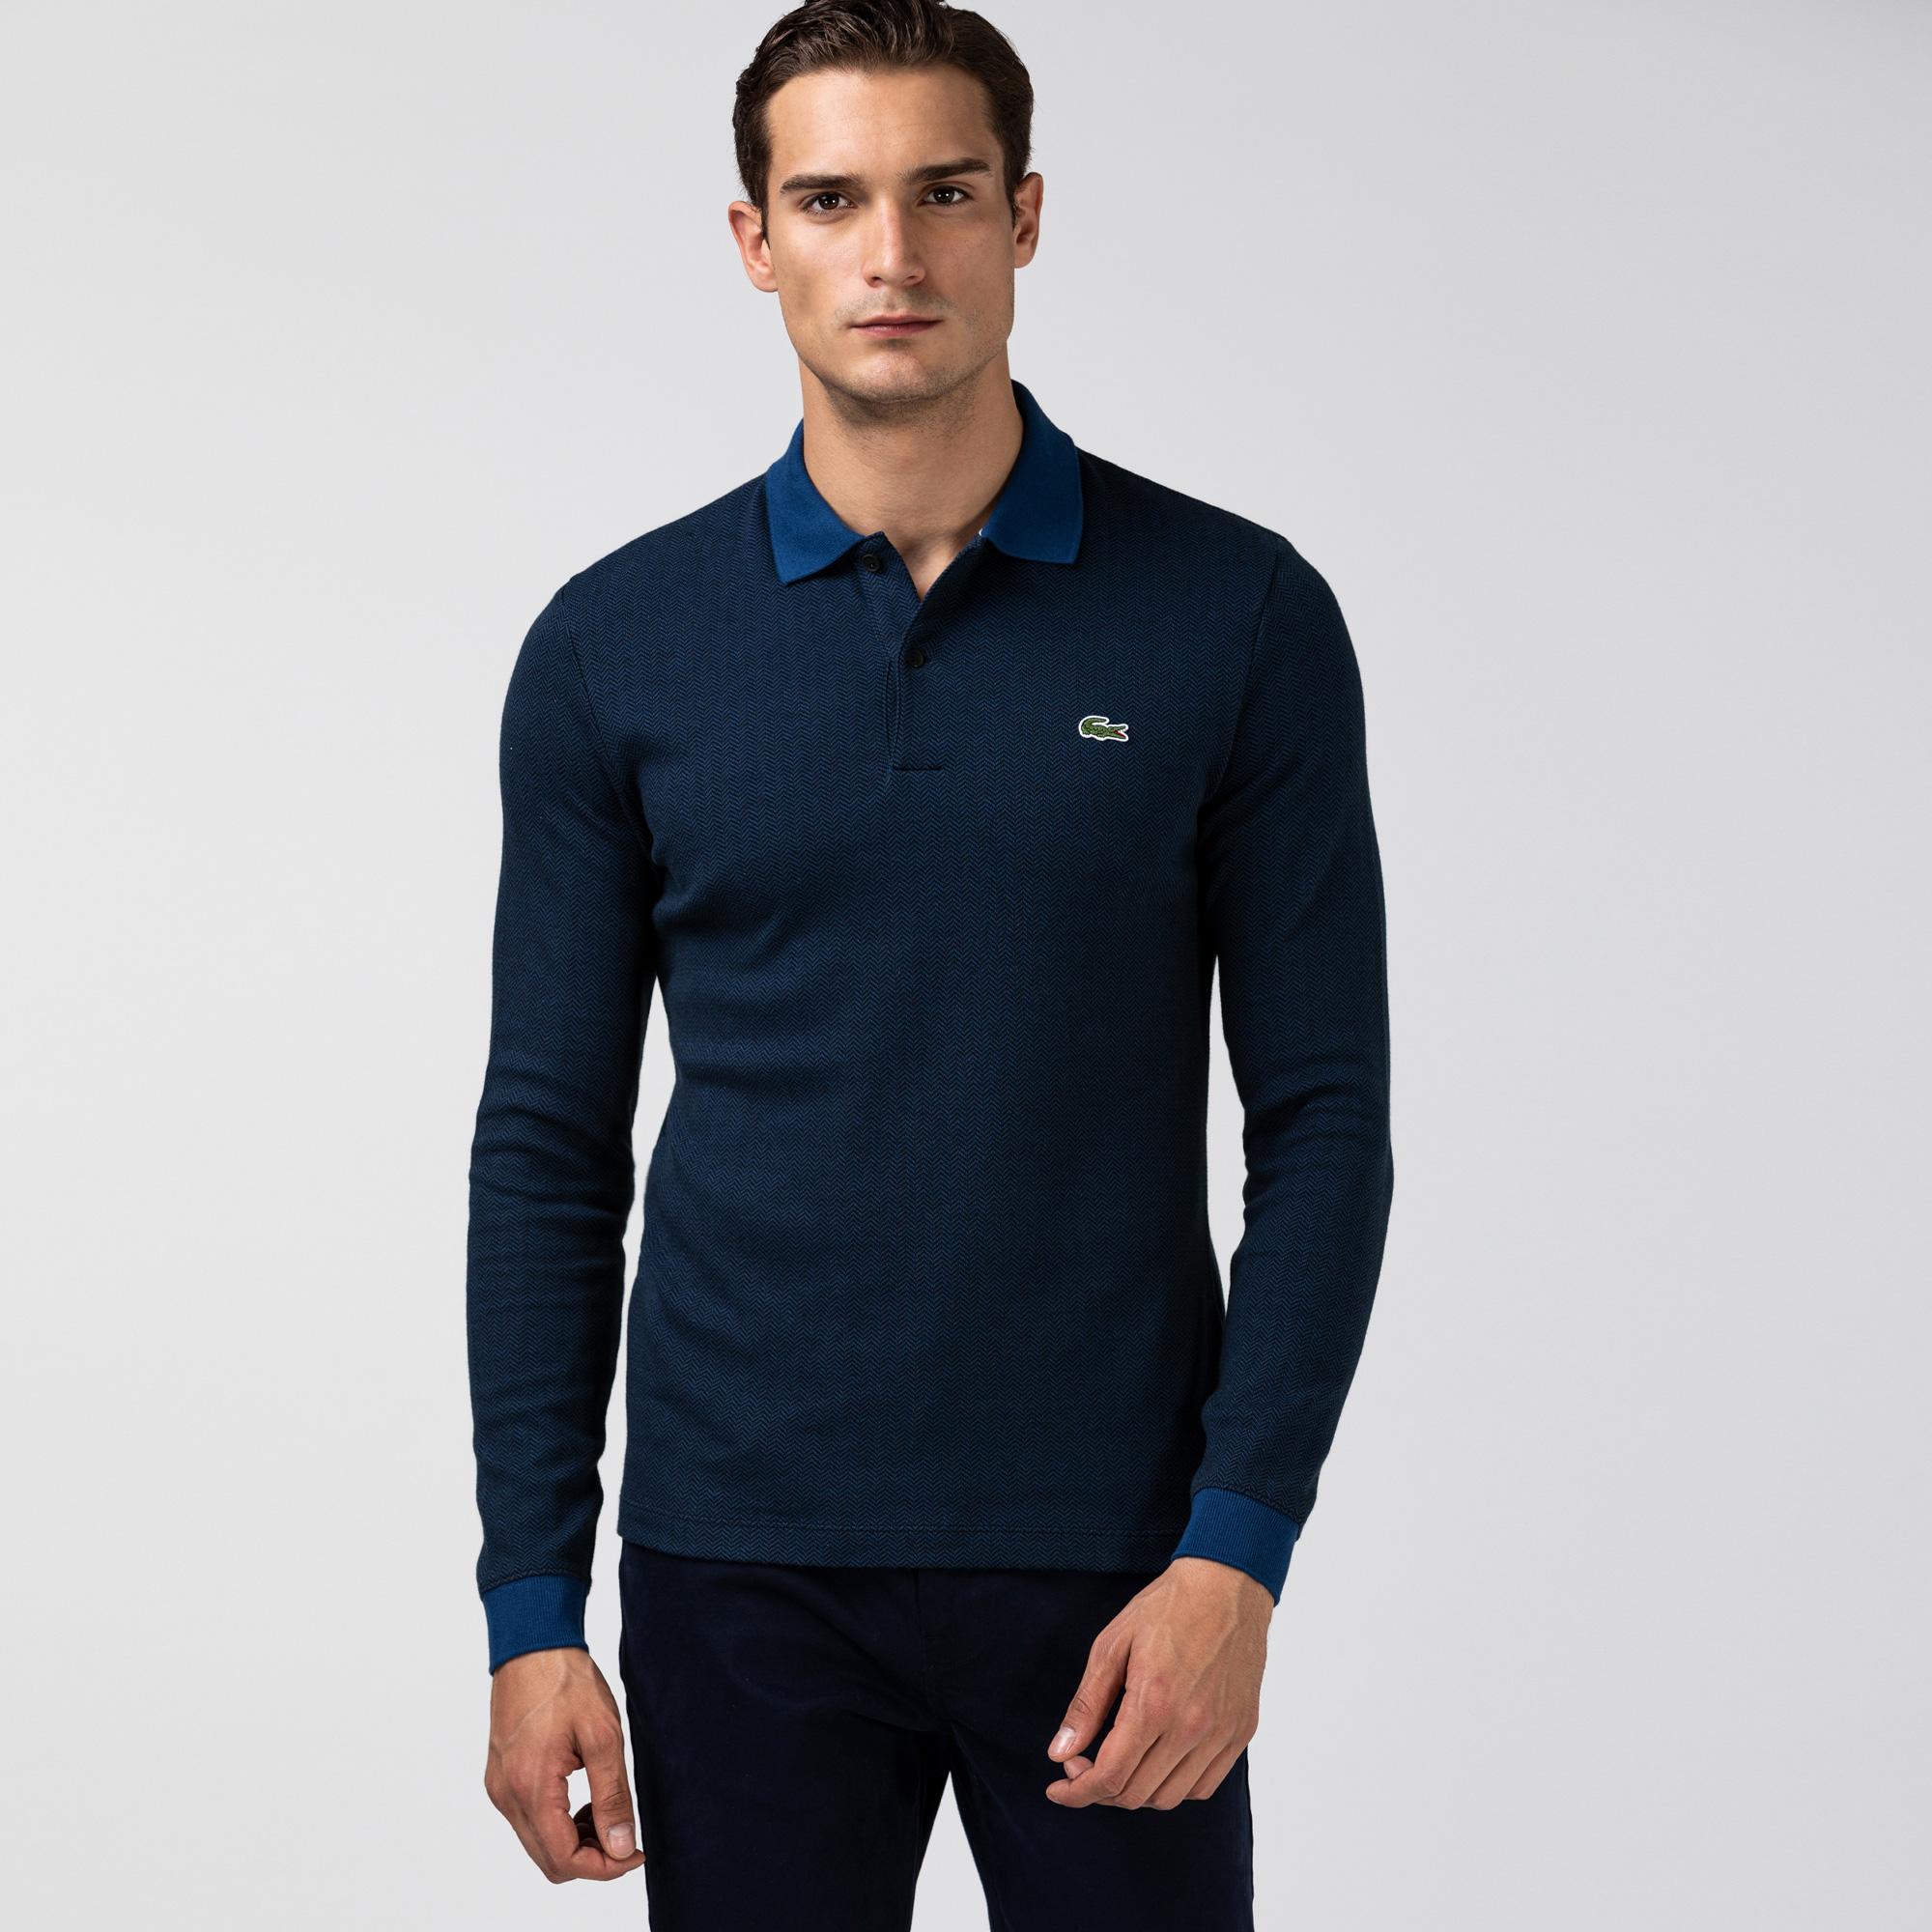 Lacoste Men's Regular Fit Herringbone Cotton Polo